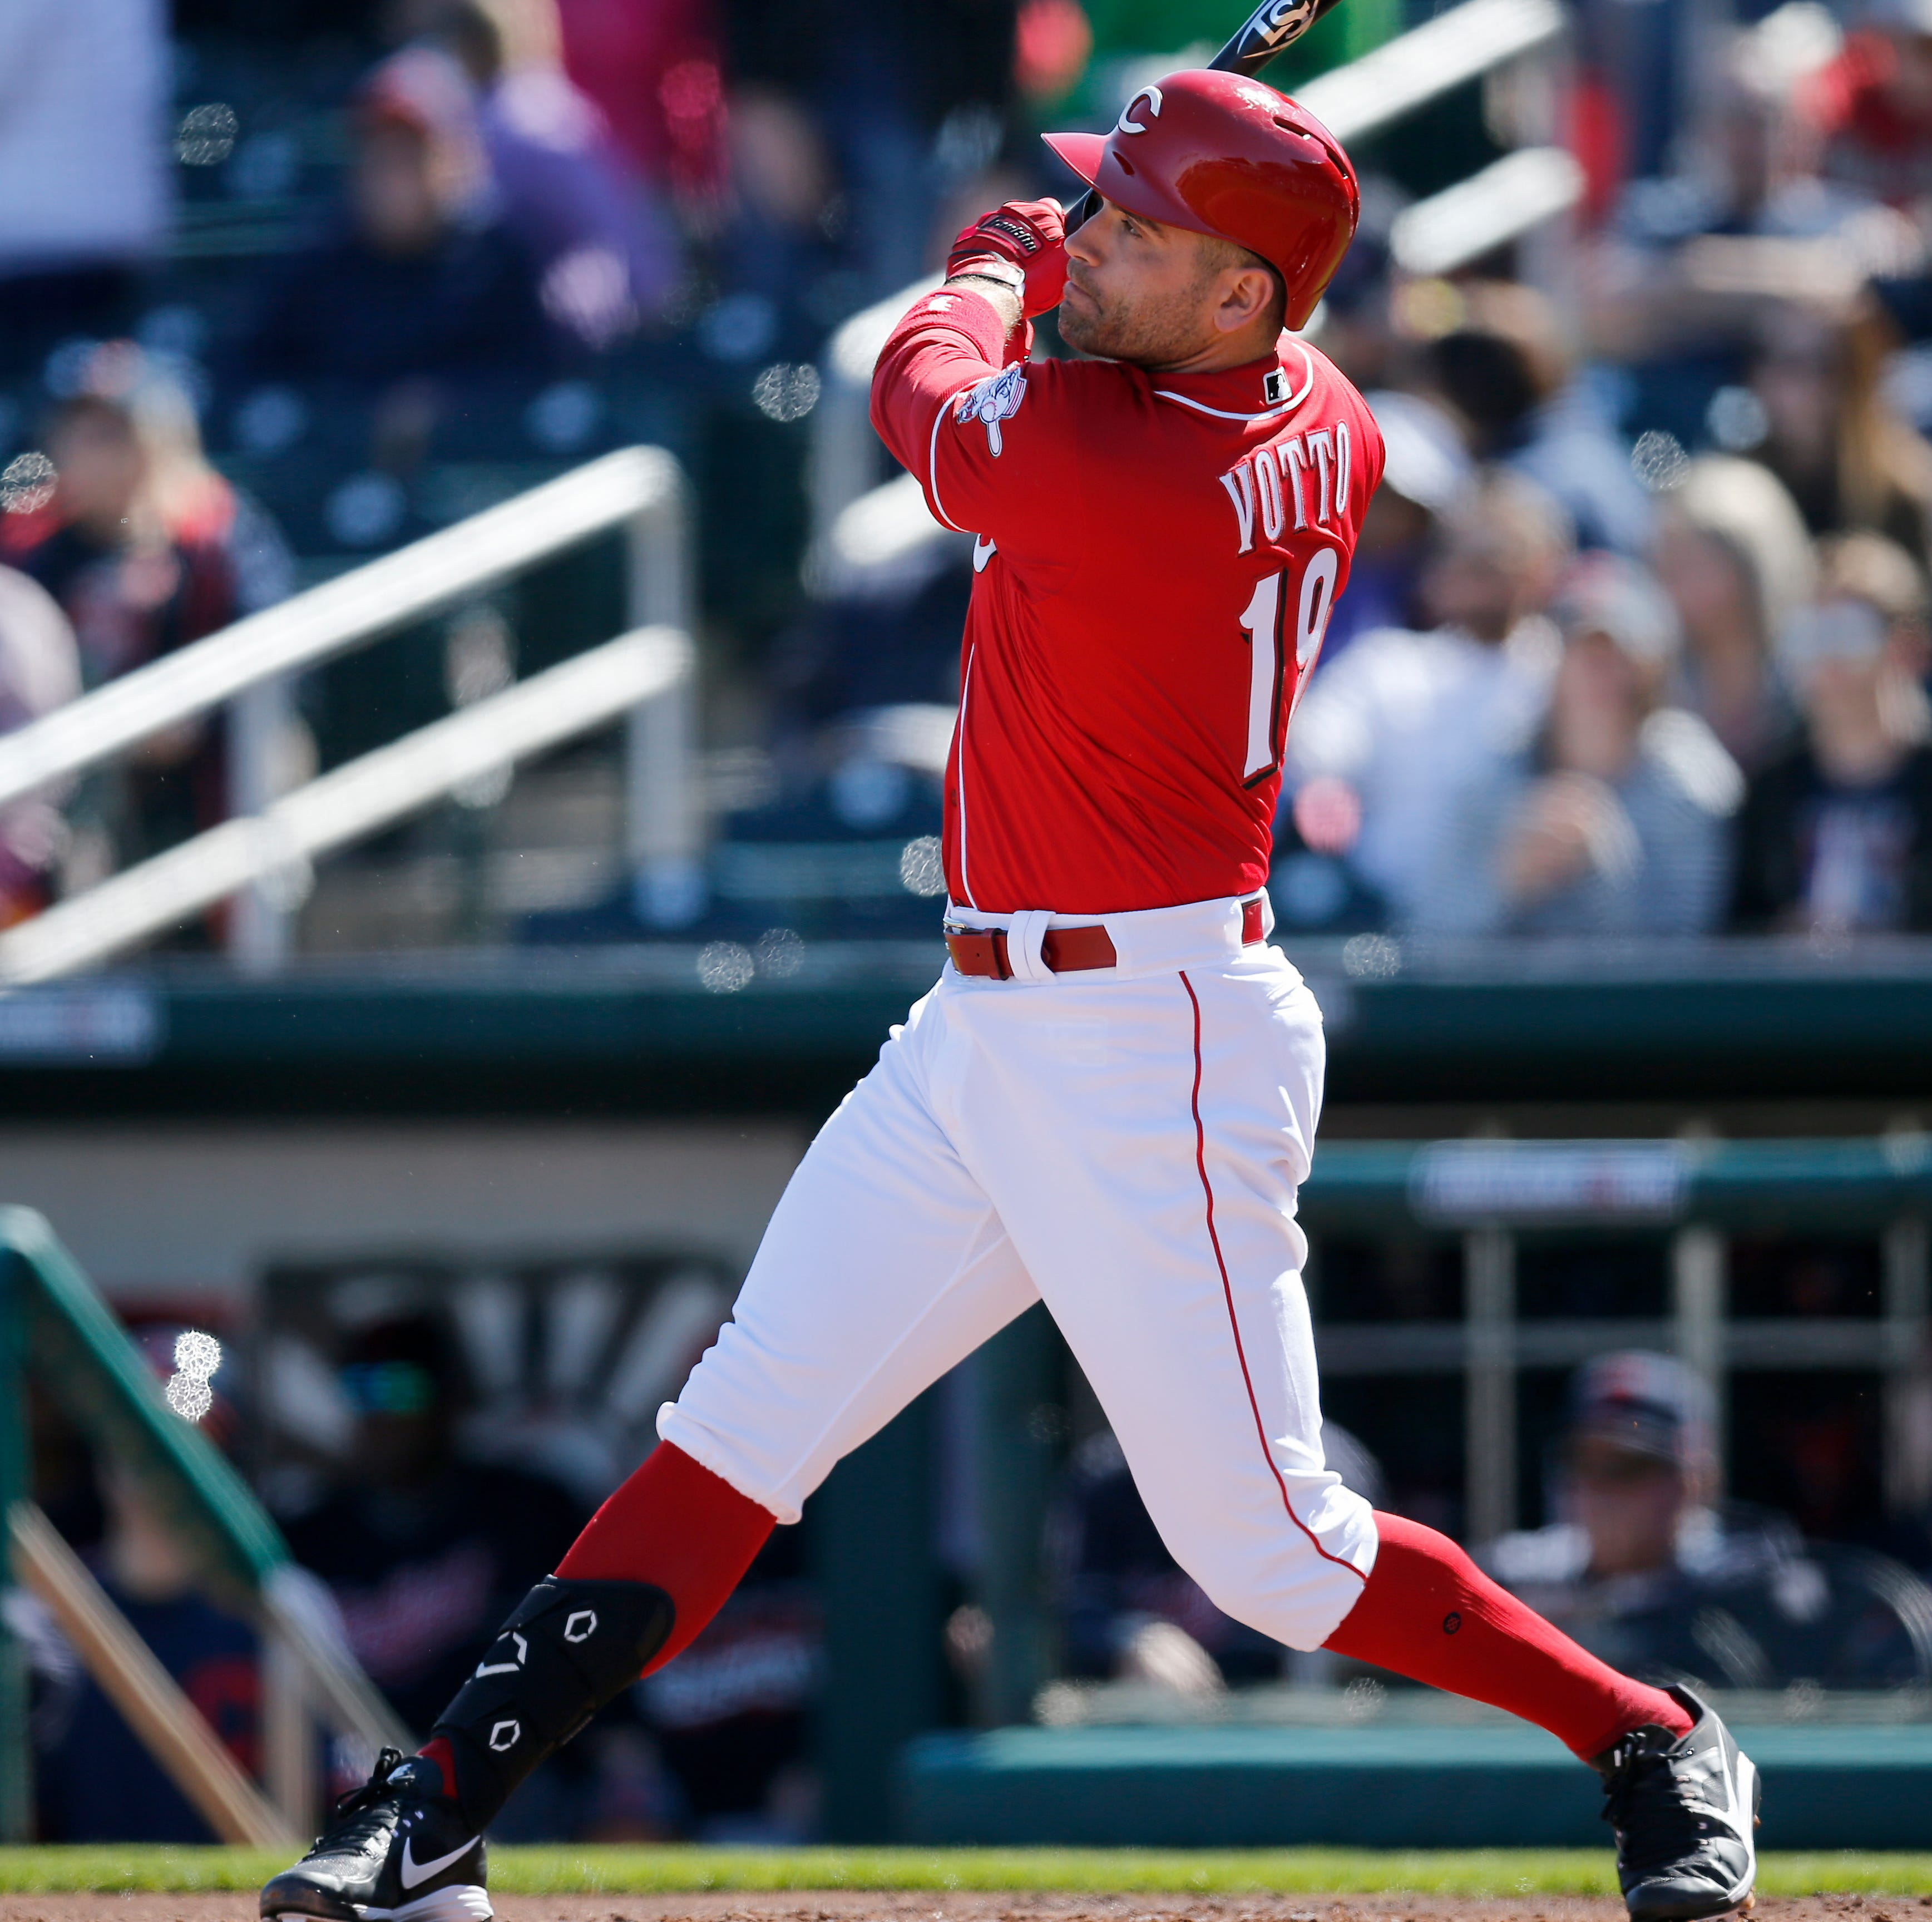 Joey Votto chasing his old swing as he looks to bounce back from his 2018 season